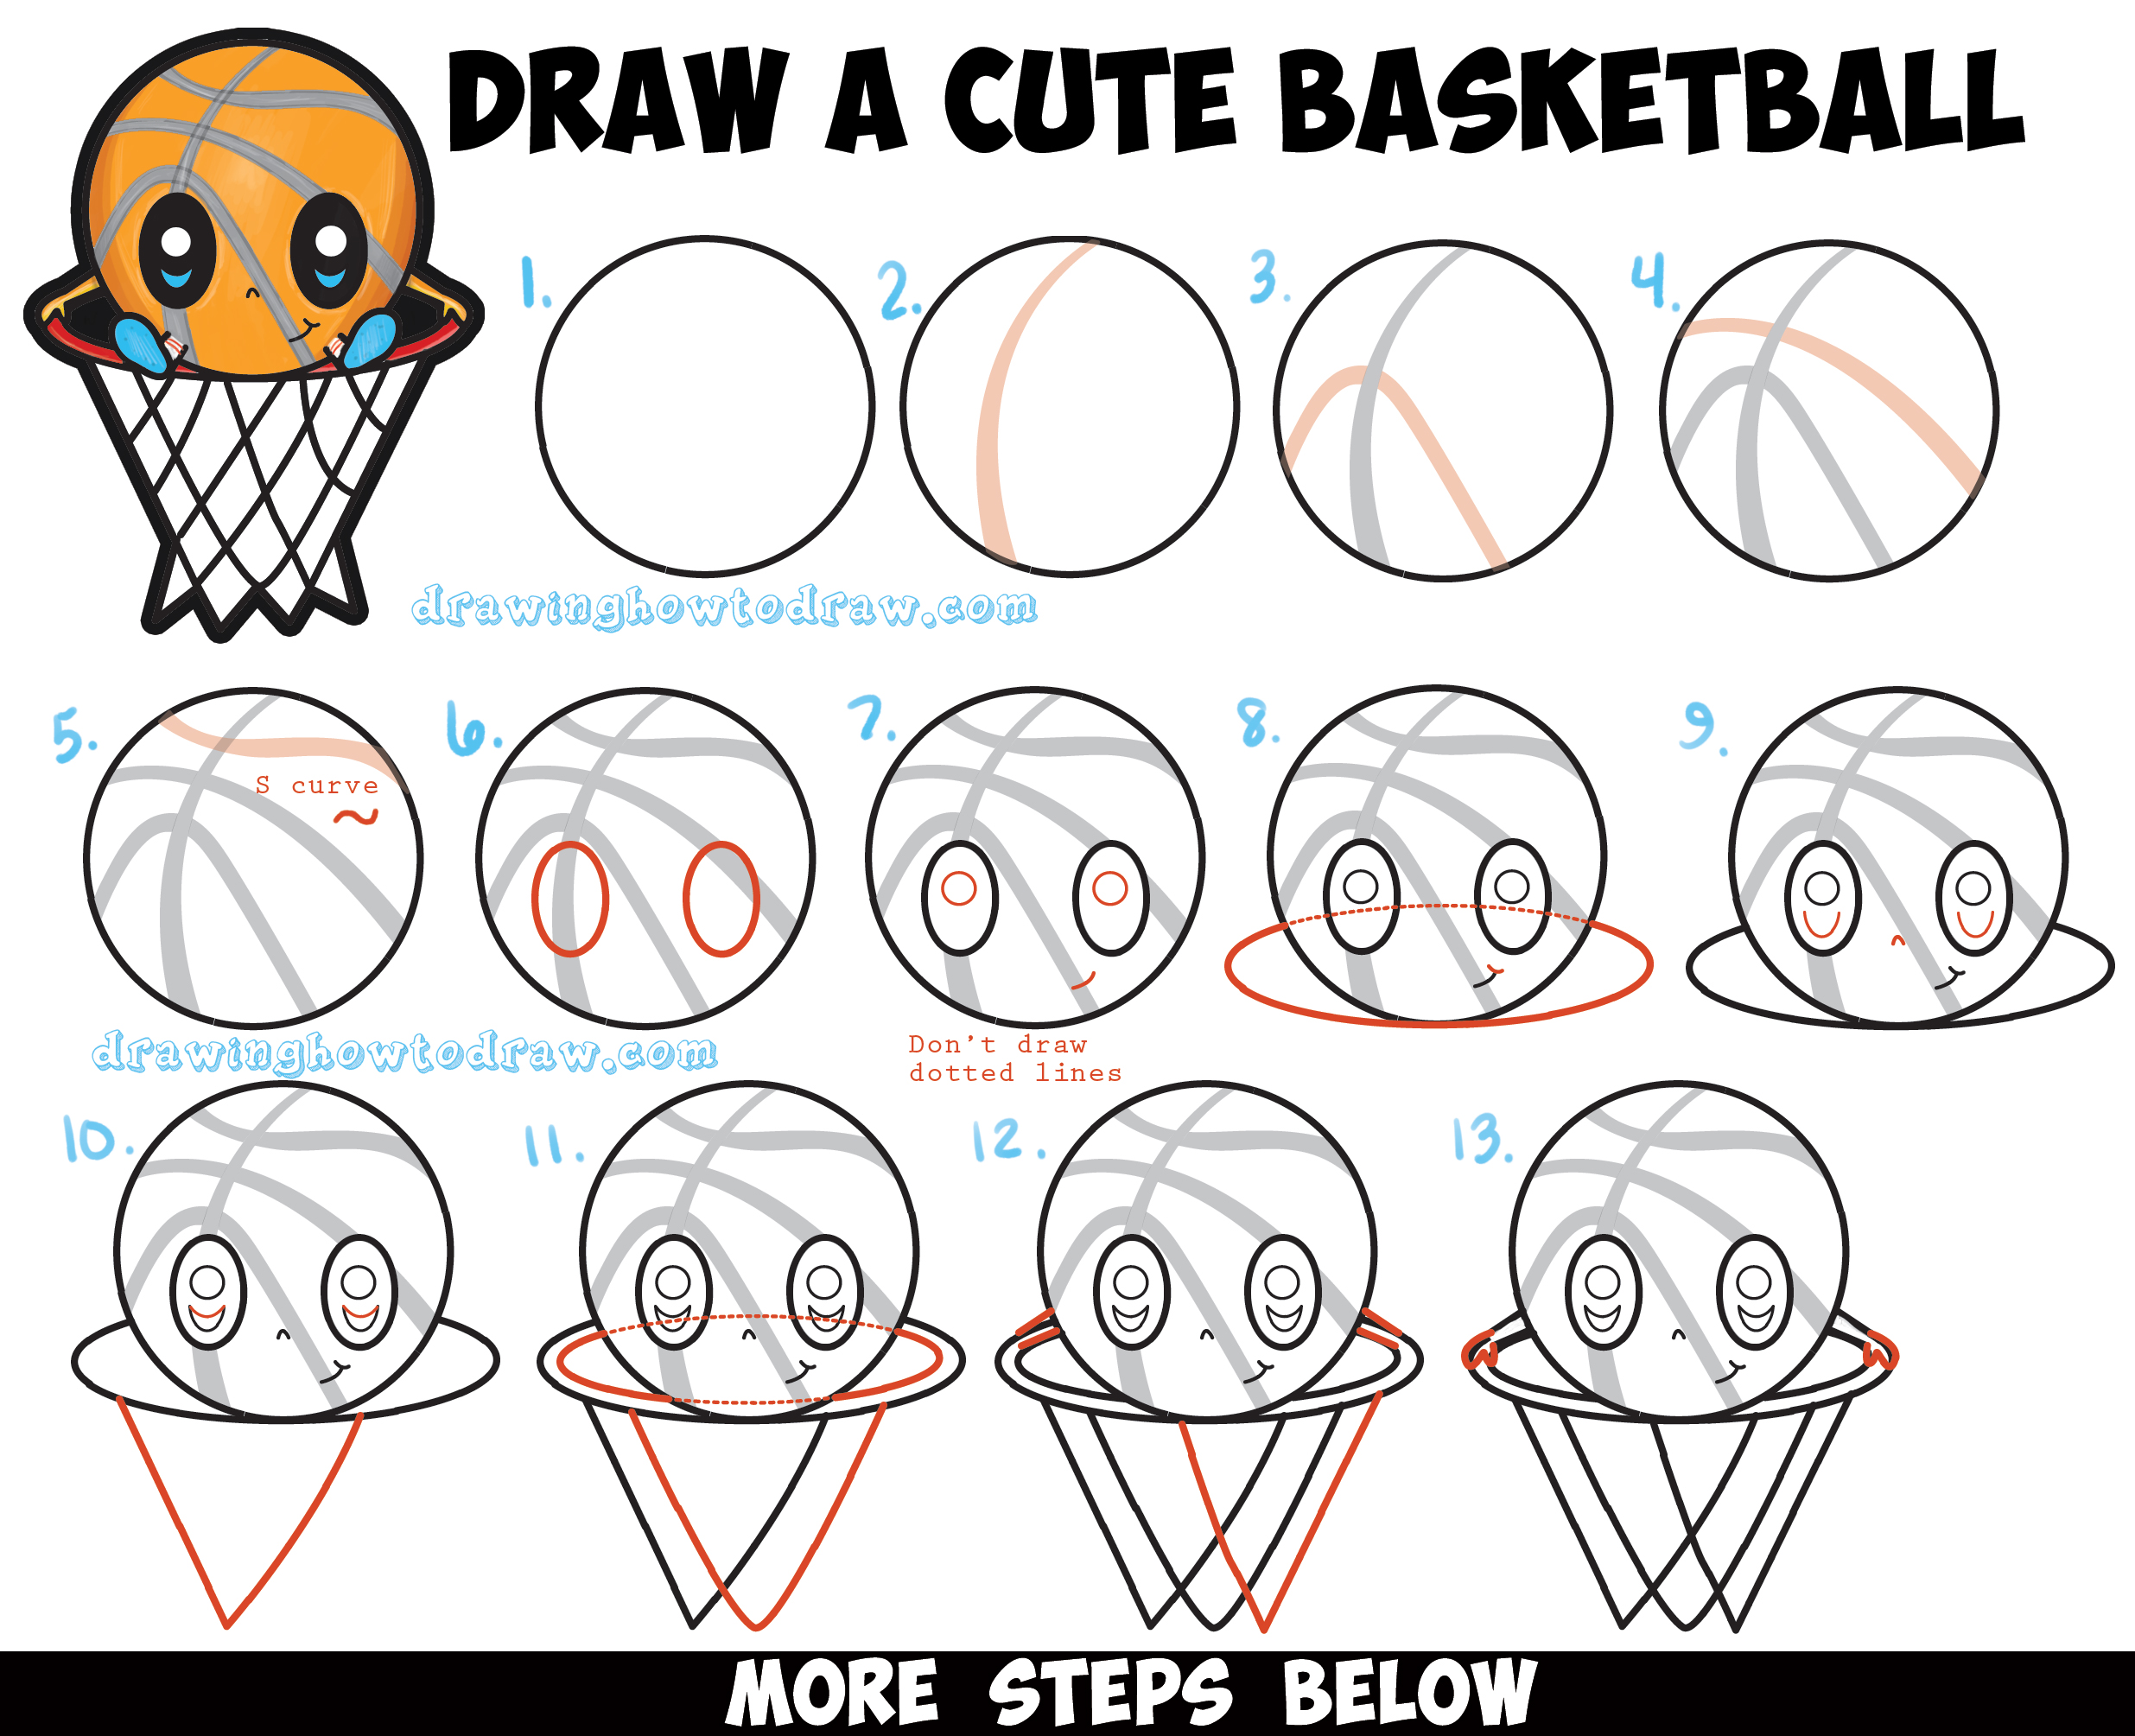 How to Draw a Cartoon Basketball Guy (Cute Kawaii Chibi Style) in Easy Step by Step Drawing Tutorial for Kids